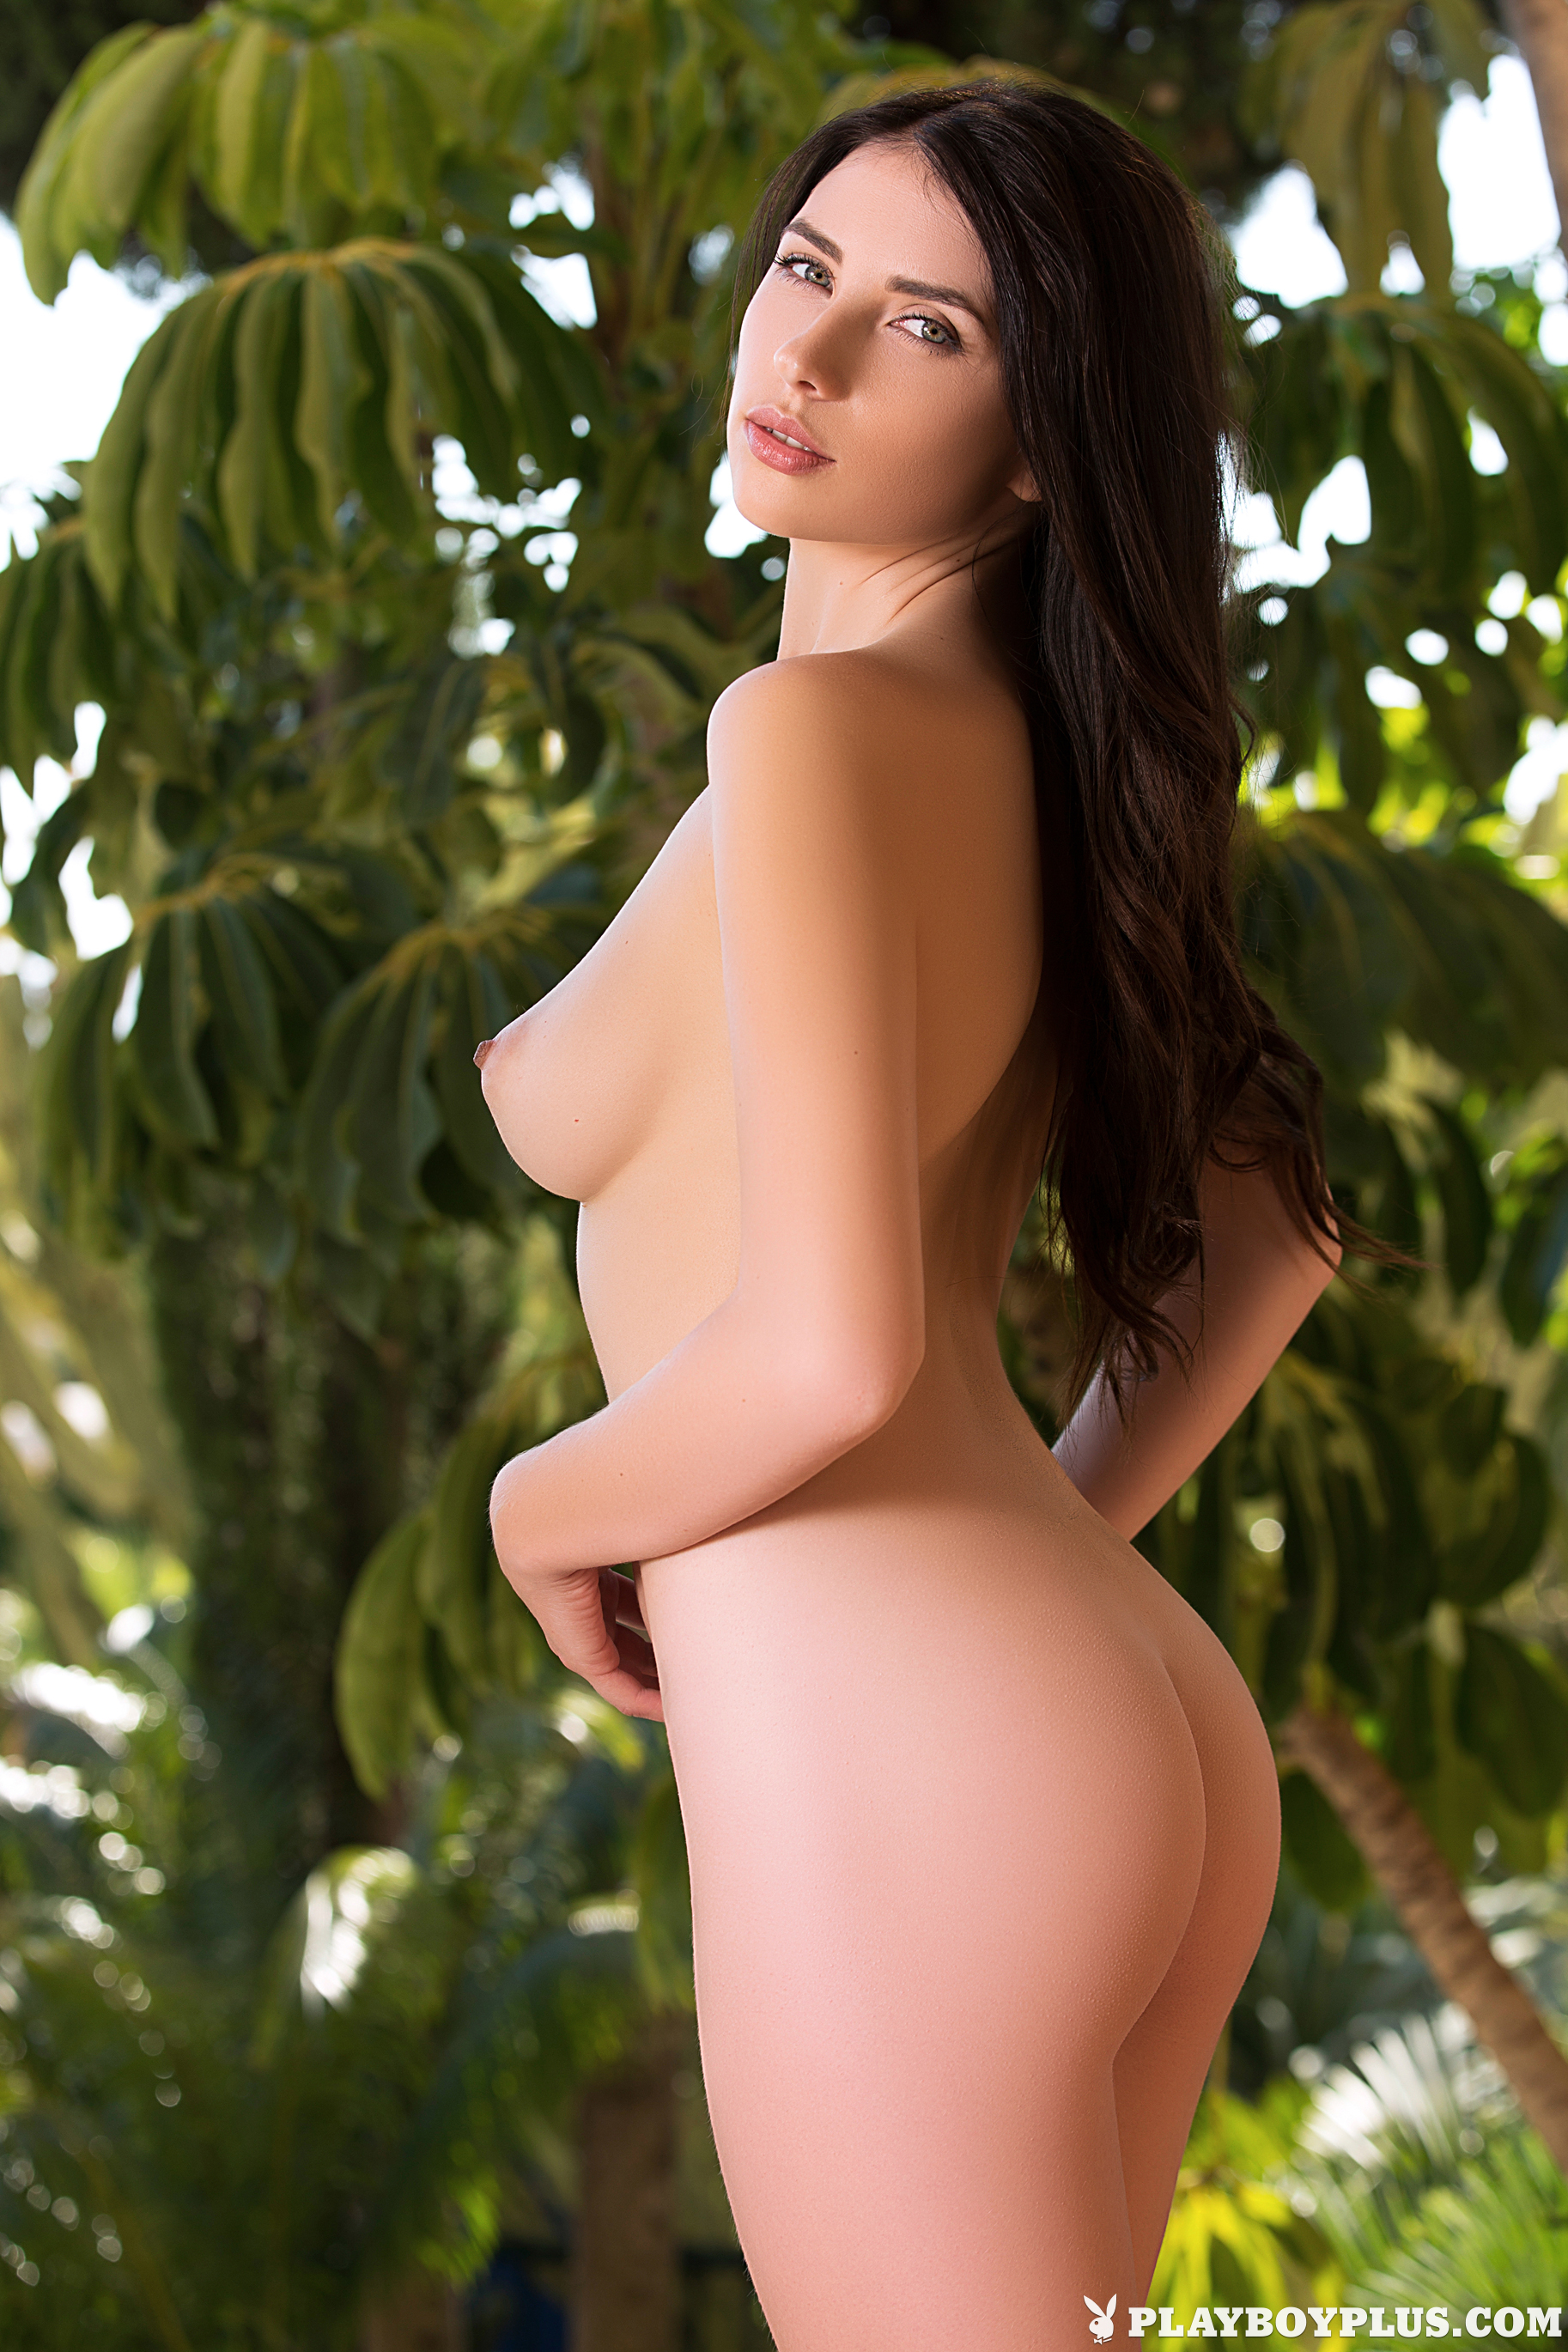 Niemira Sitting Outside Naked - Sexy Gallery Full Photo -6284